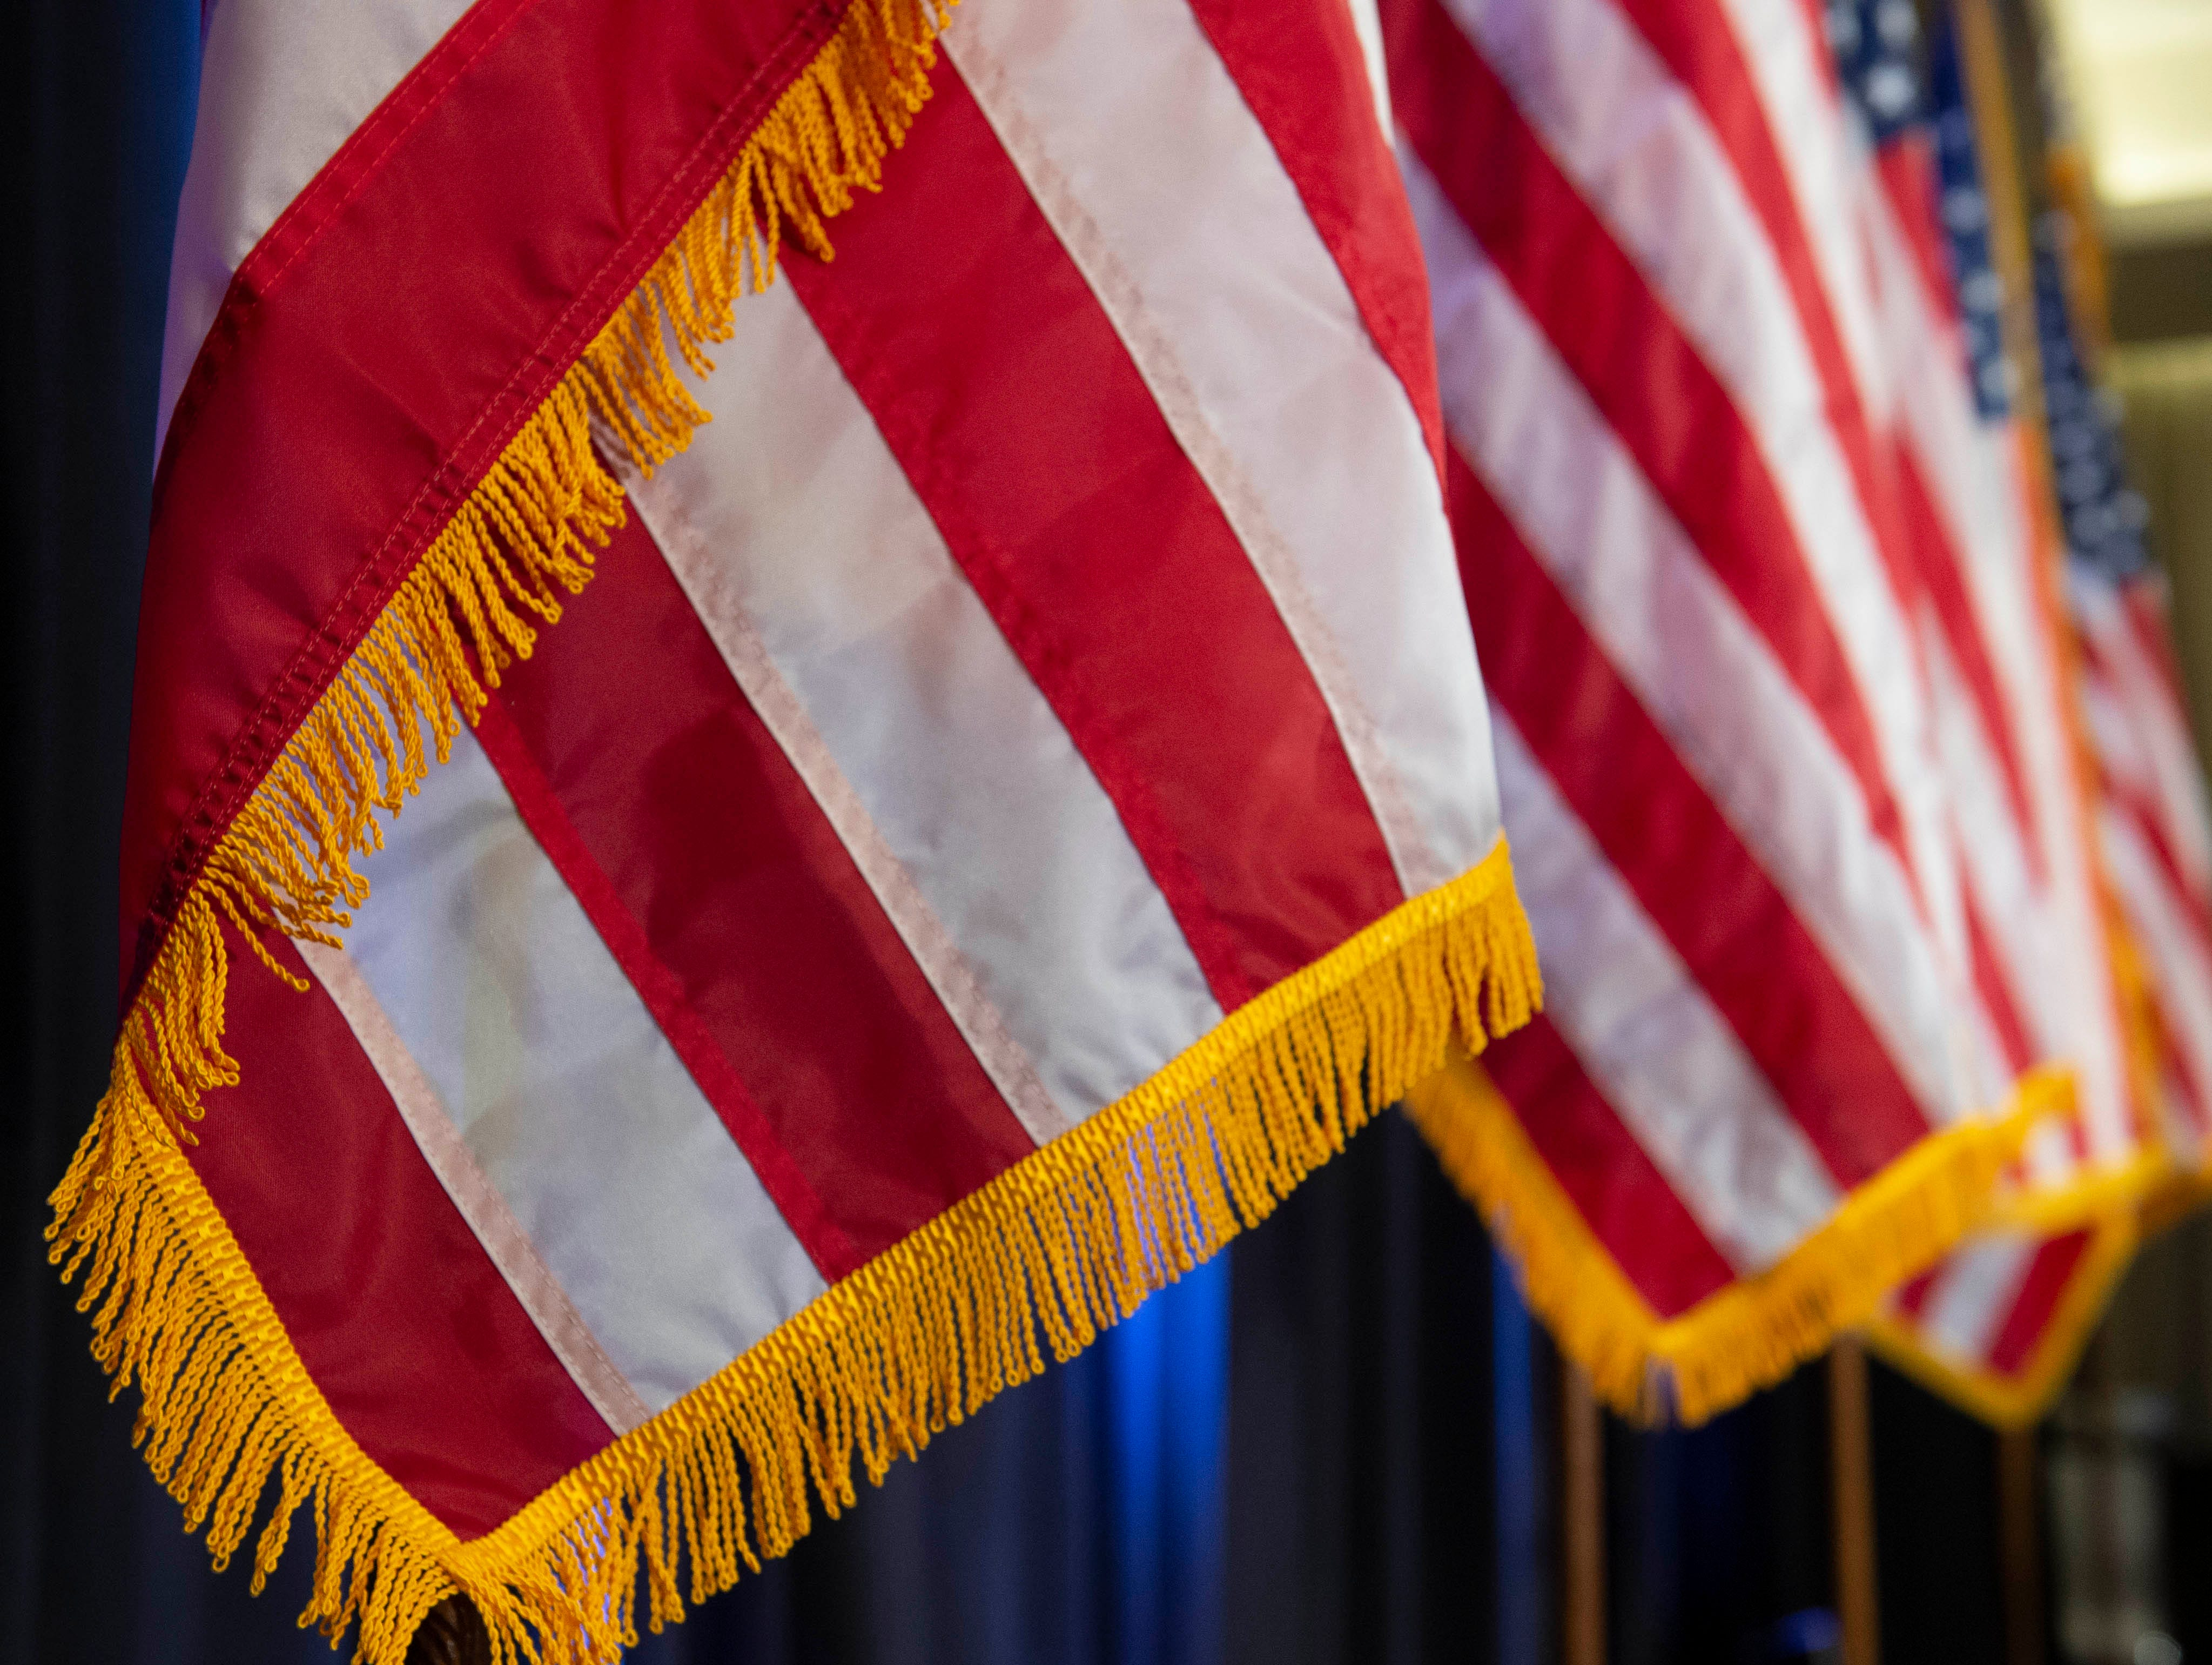 American flags stand along the stage in the ballroom of the Westin hotel during the election night party for Sen. Cindy Hyde-Smith. Jackson, Miss. Tuesday, Nov. 6, 2018.